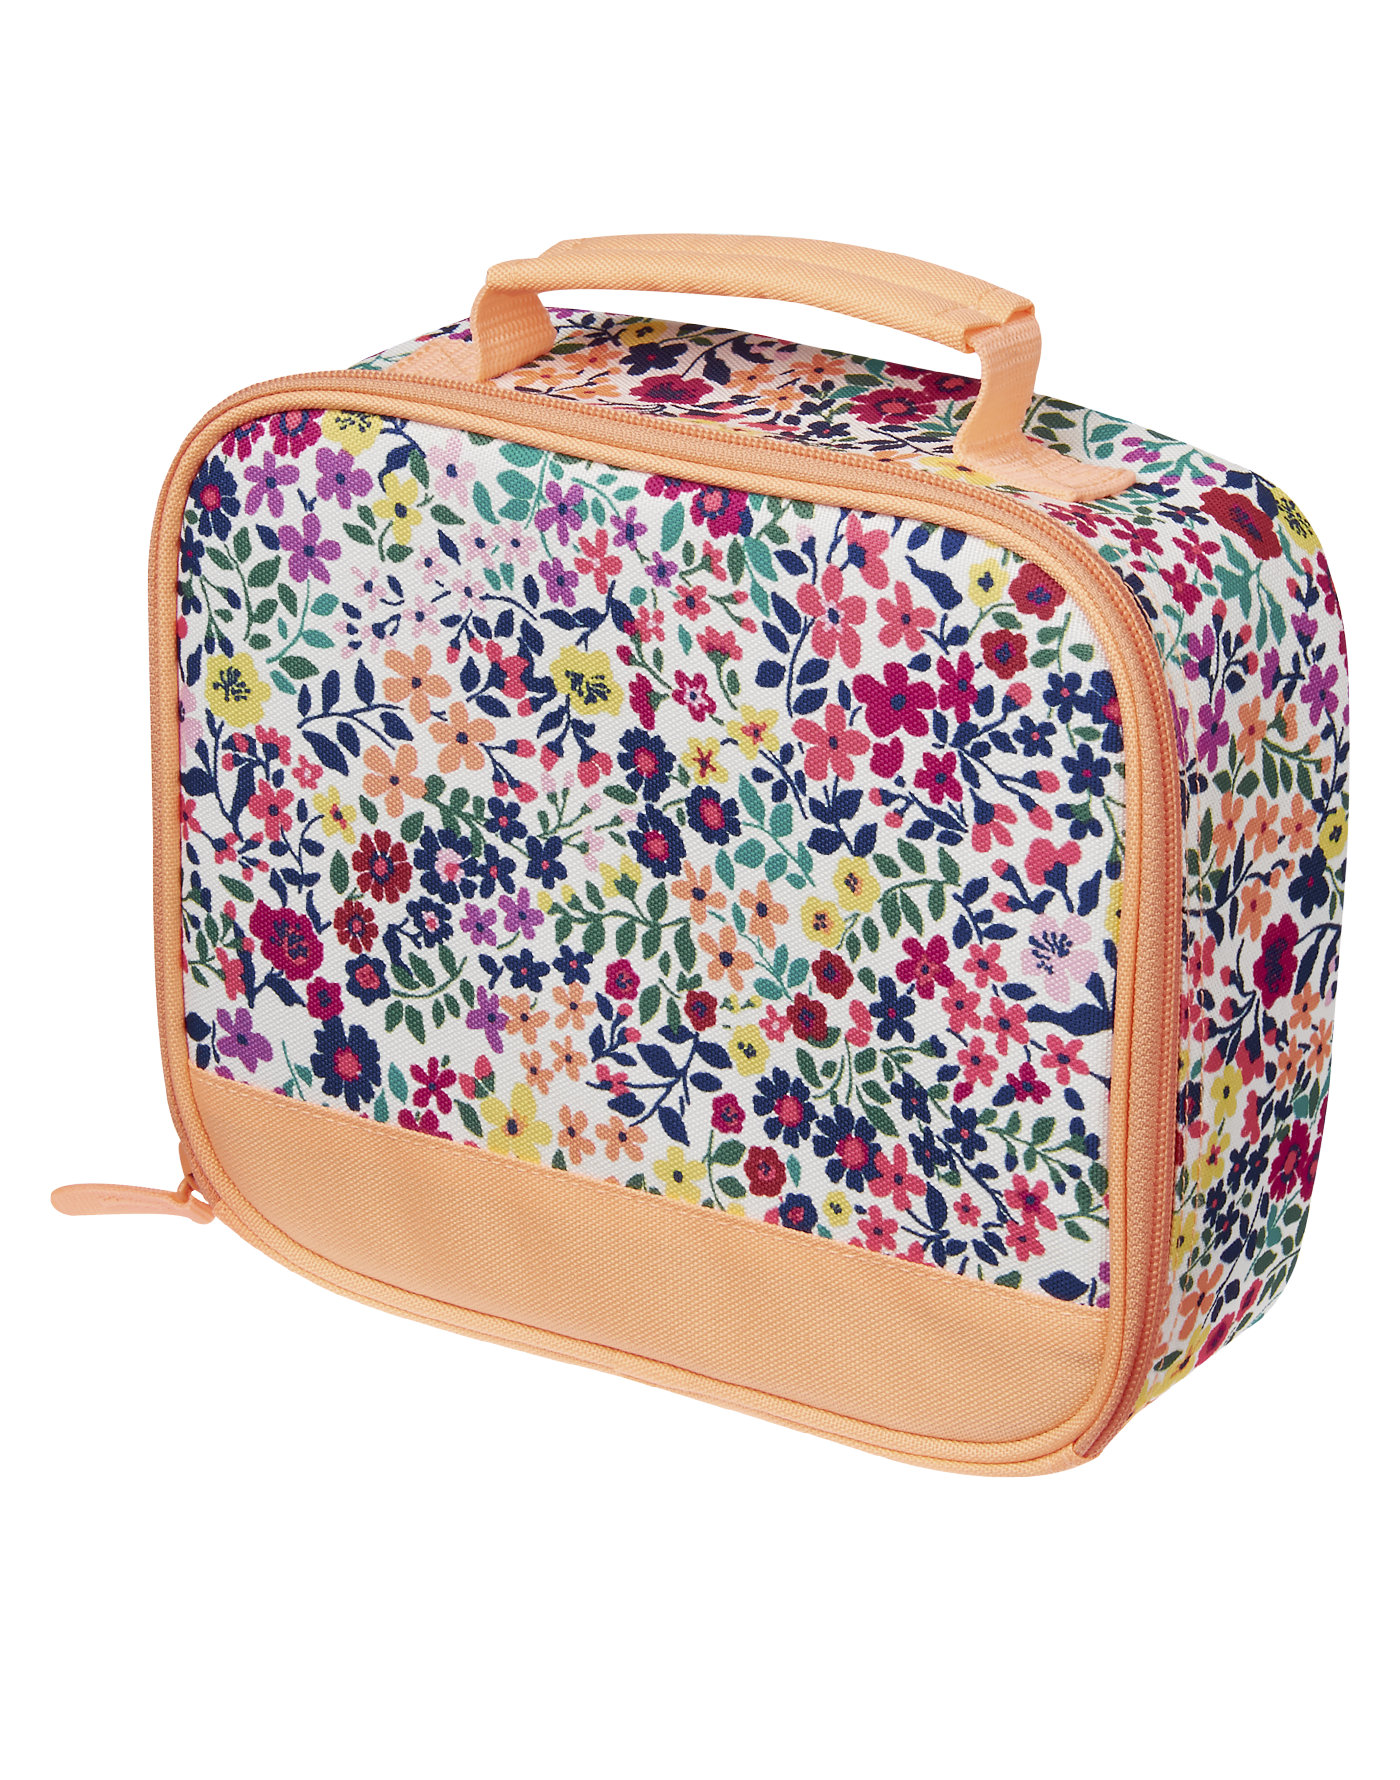 Kids' & Adult Lunch BoxesApparel, Home & More · New Events Every Day · Hurry, Limited Inventory · New Deals Every Dayone of zulily's values is that they work for mom. – Momtrends.